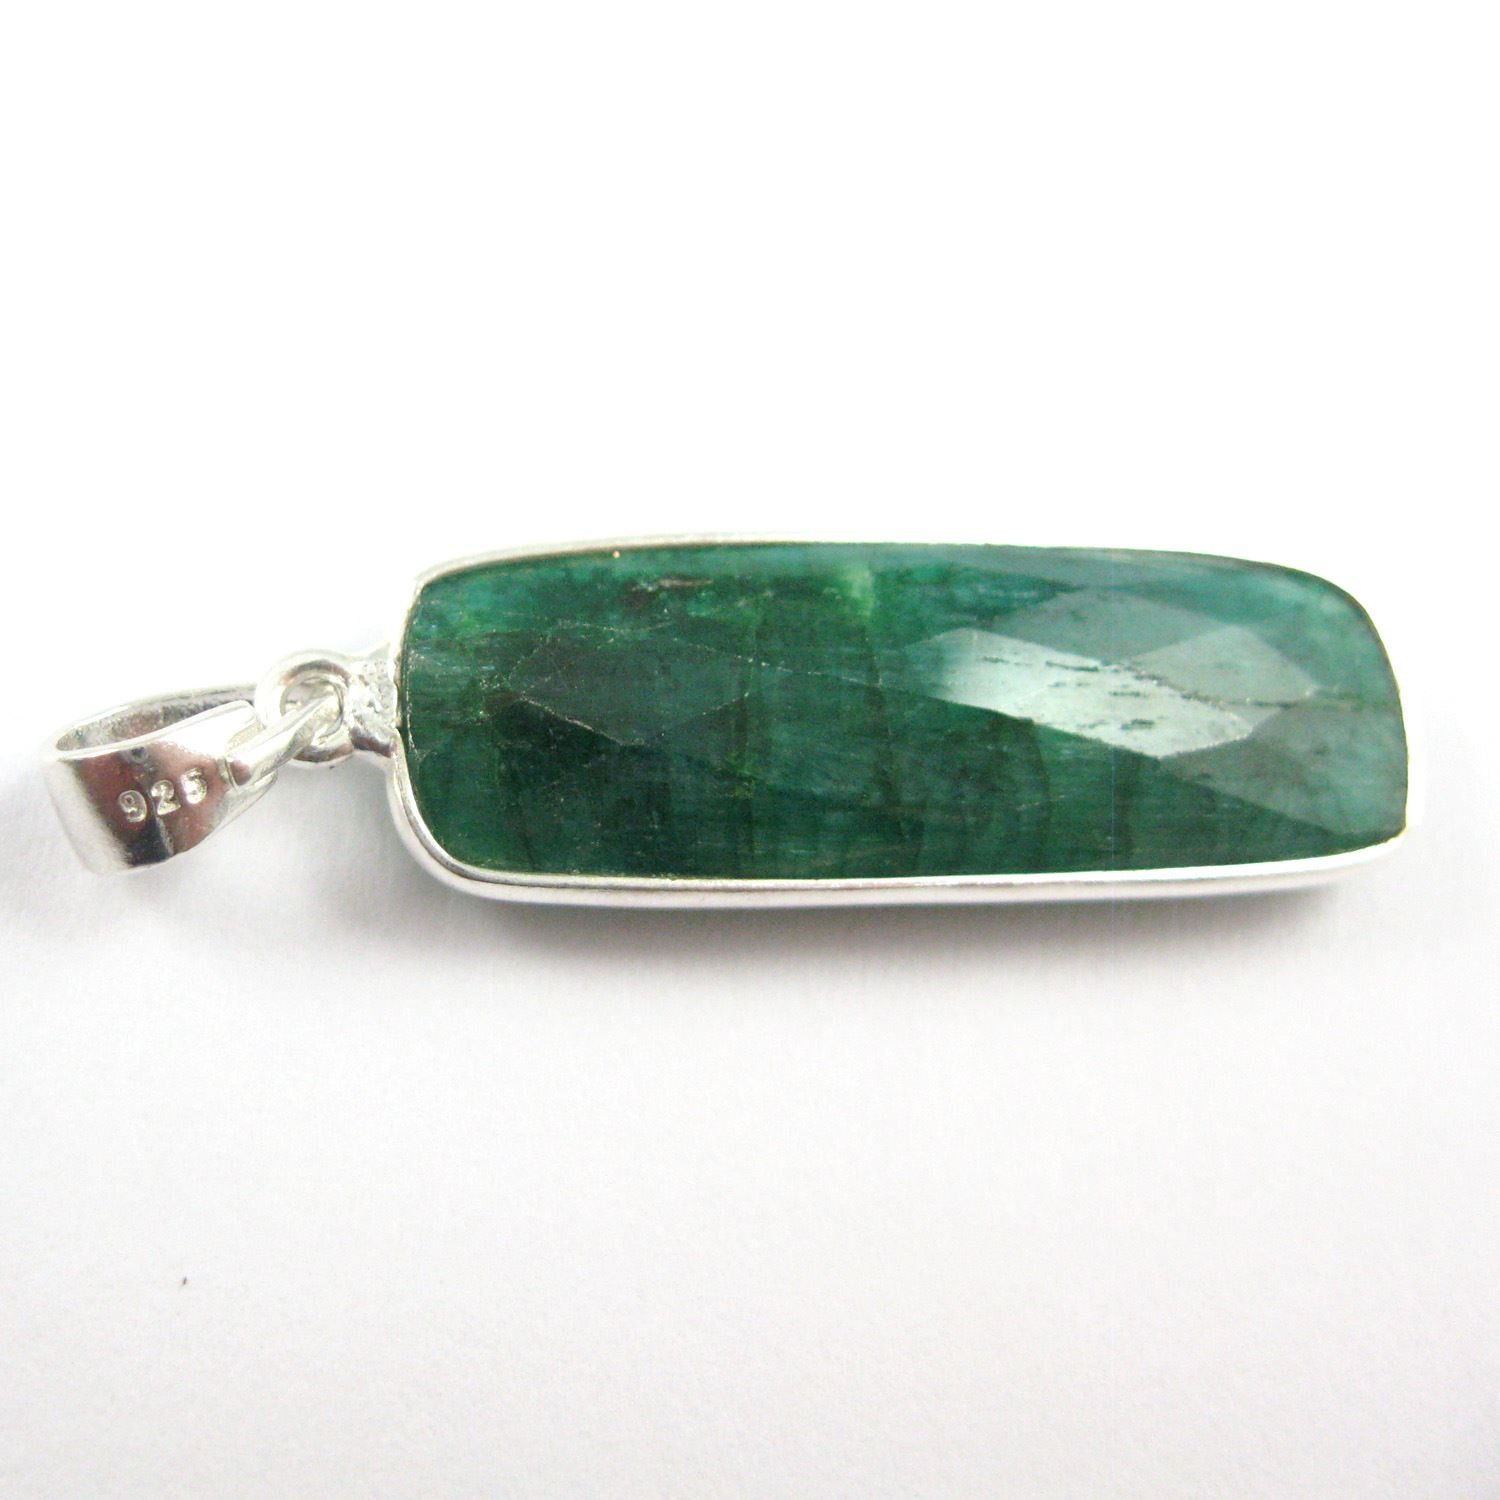 Bezel Gemstone Pendant with Bail - Sterling Silver Rectangle Gem Pendant - Ready for Necklace - 40mm - Emerald Dyed